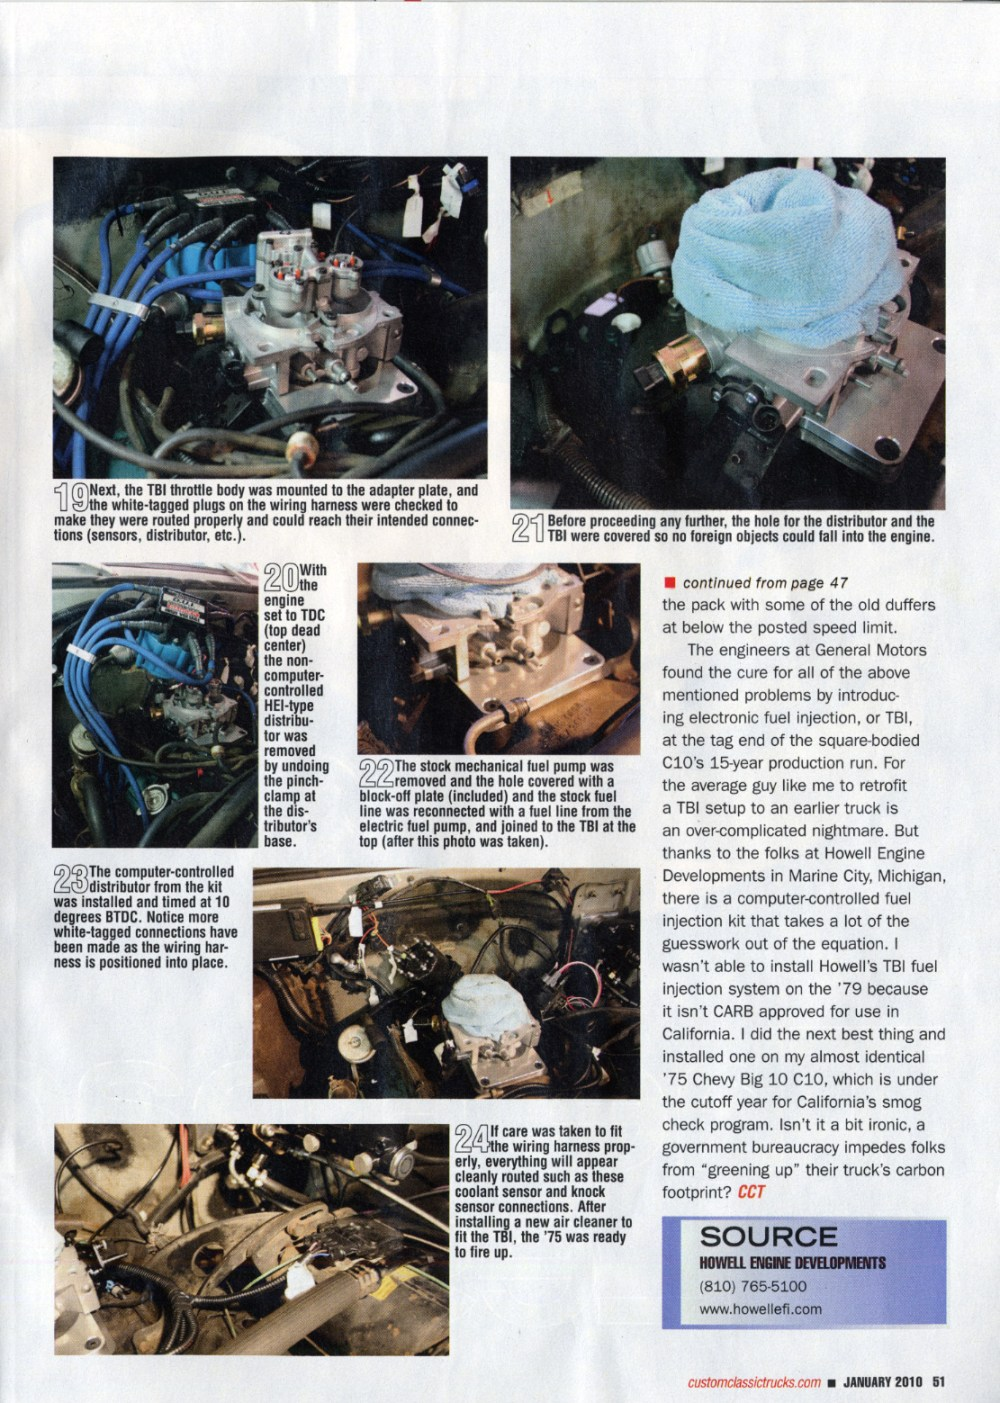 medium resolution of  in your 73 87 this article was from the january 2010 issue of custom classic trucks magazine click the thumbnails below to view the full size image